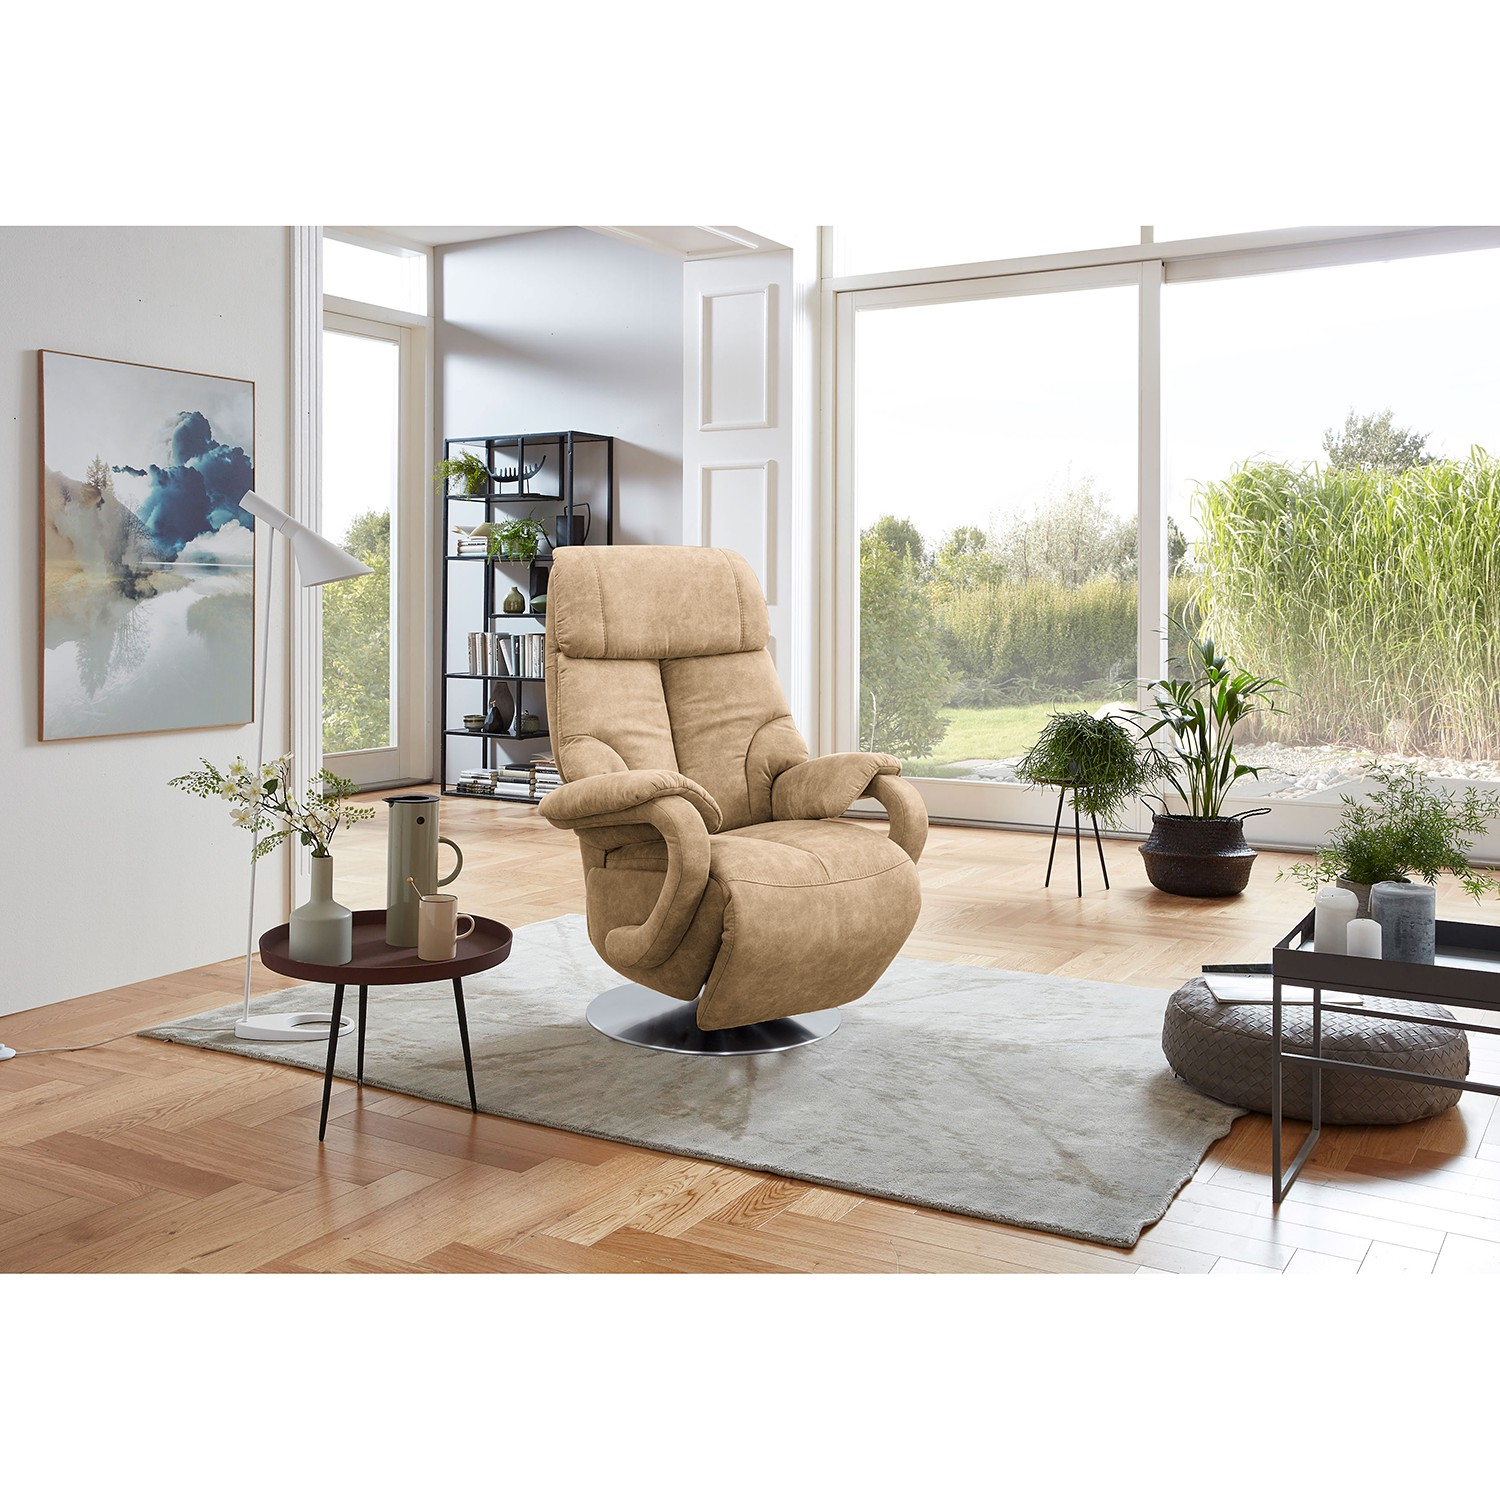 home24 Relaxsessel Foulbec